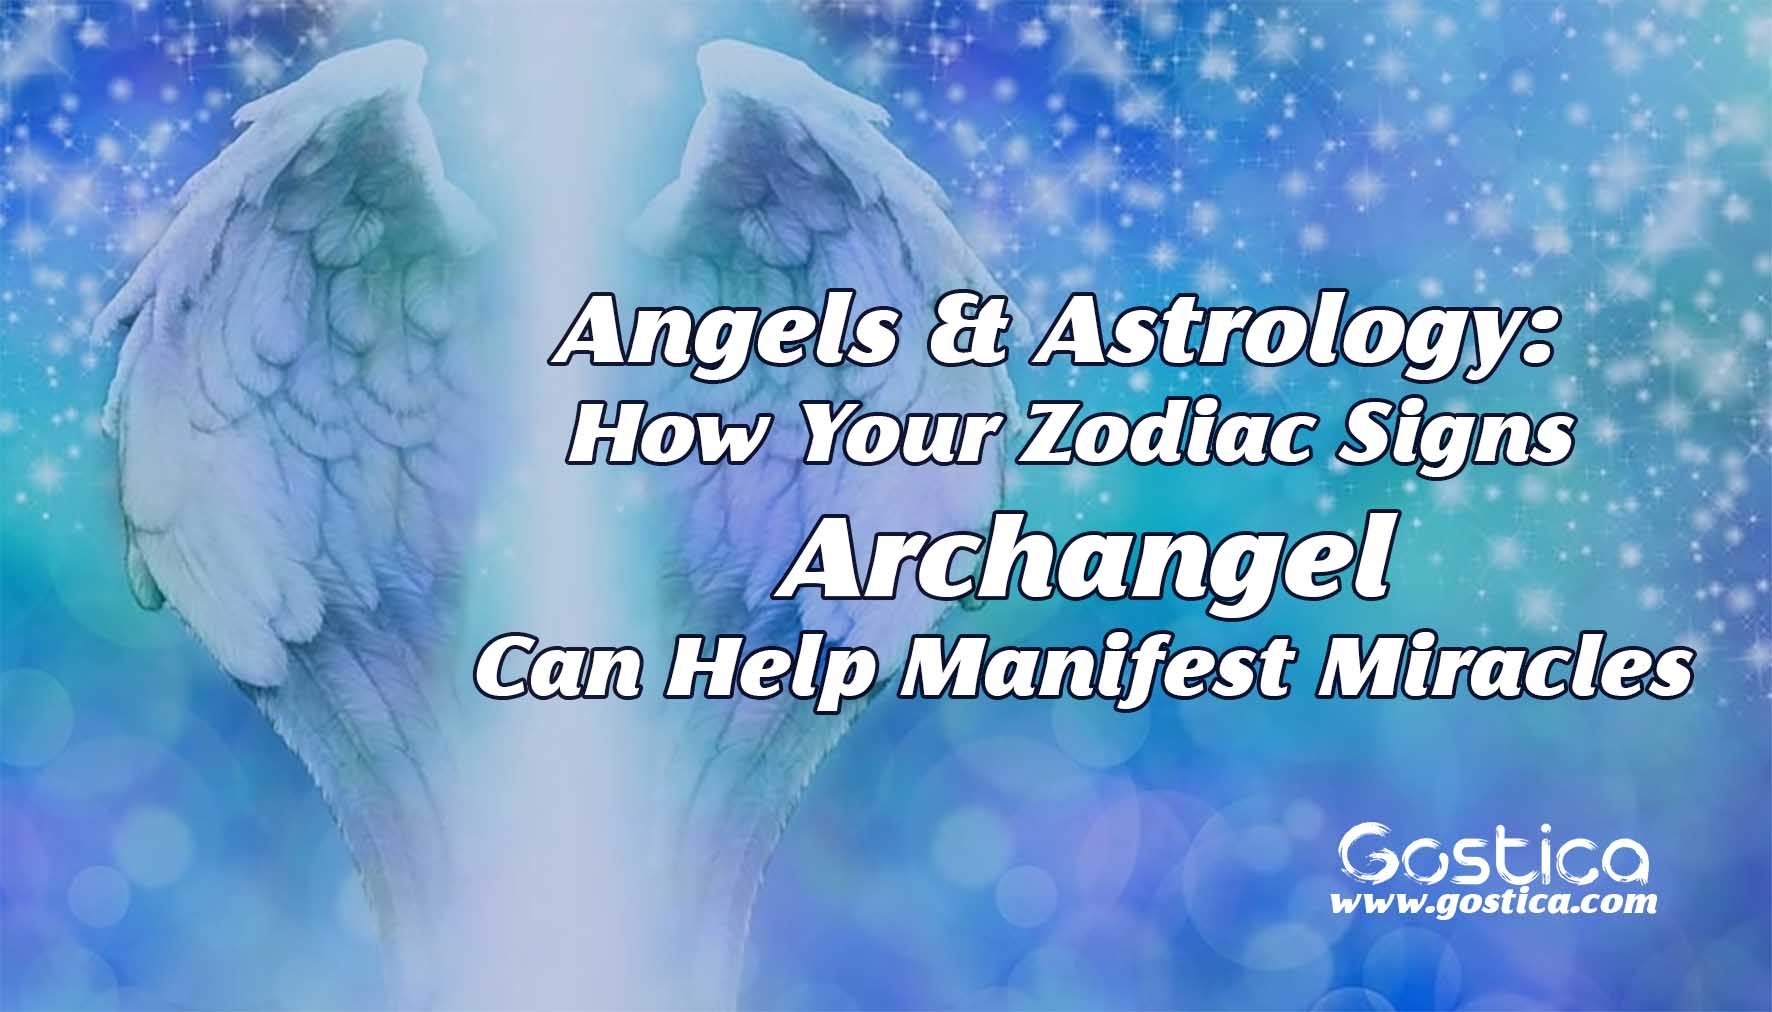 Angels-Astrology-How-Your-Zodiac-Signs-Archangel-Can-Help-Manifest-Miracles.jpg